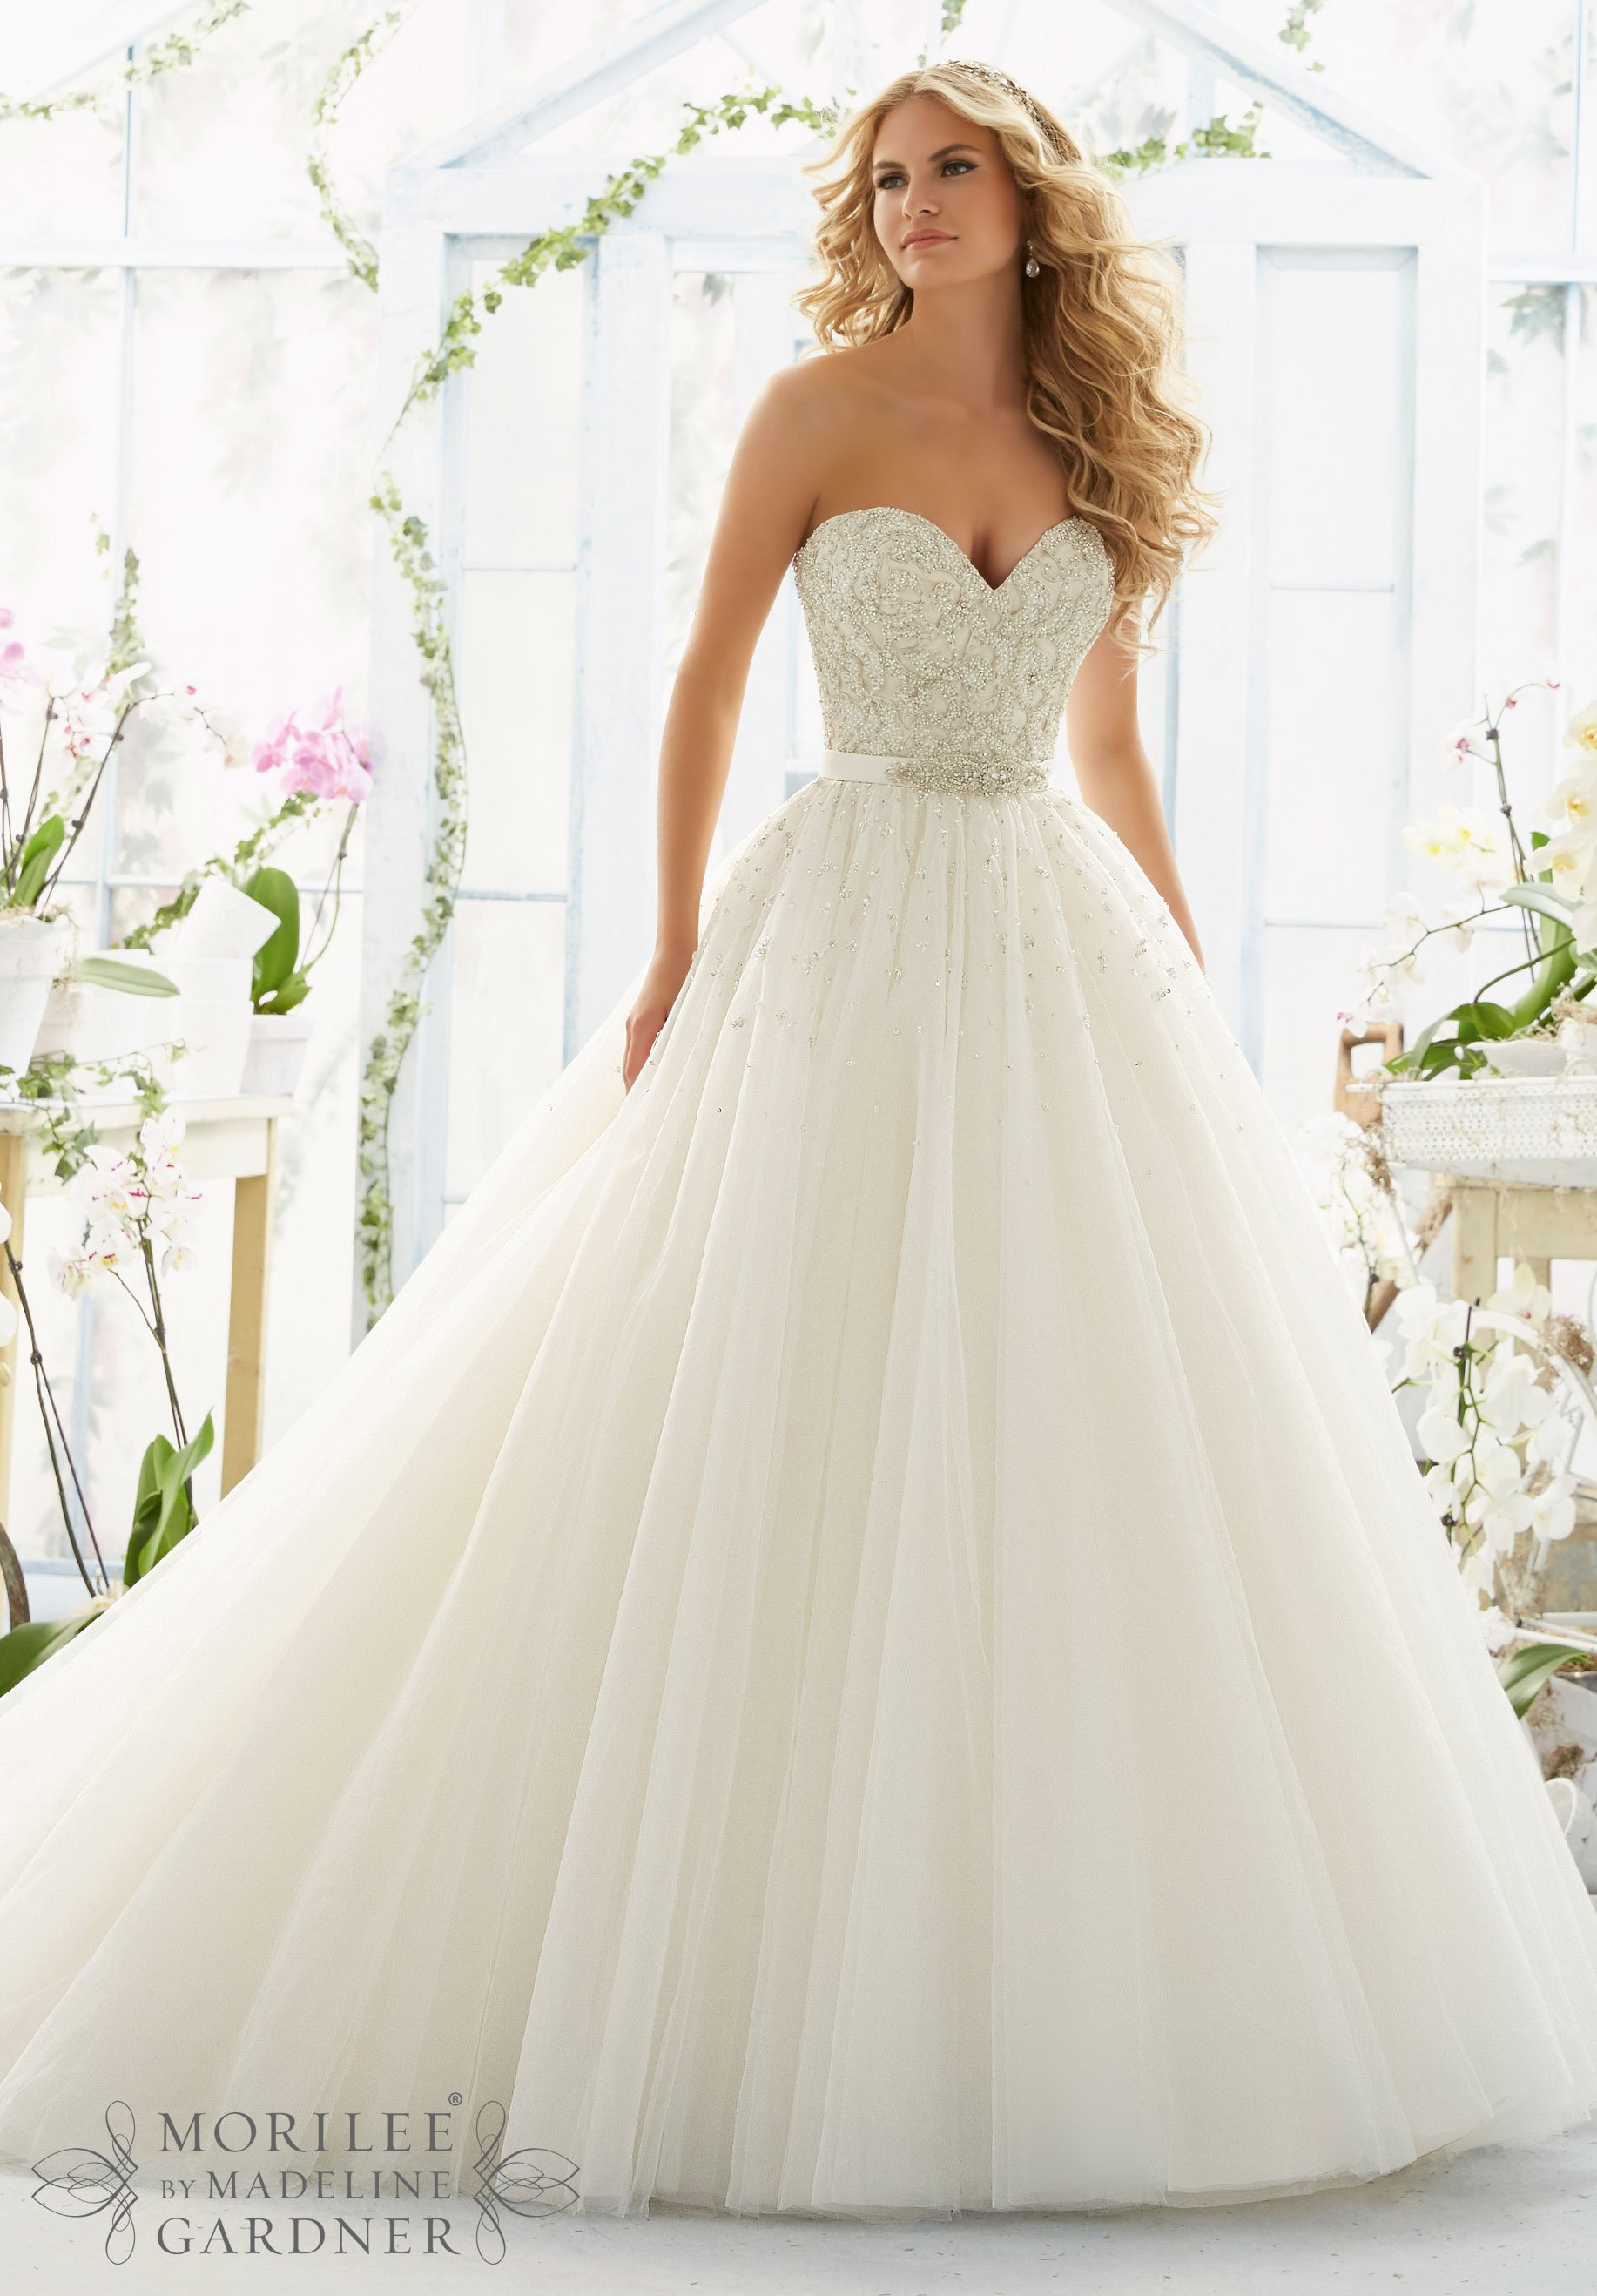 Outstanding Mori Lee Bridal Gowns Image Collection - Top Wedding ...